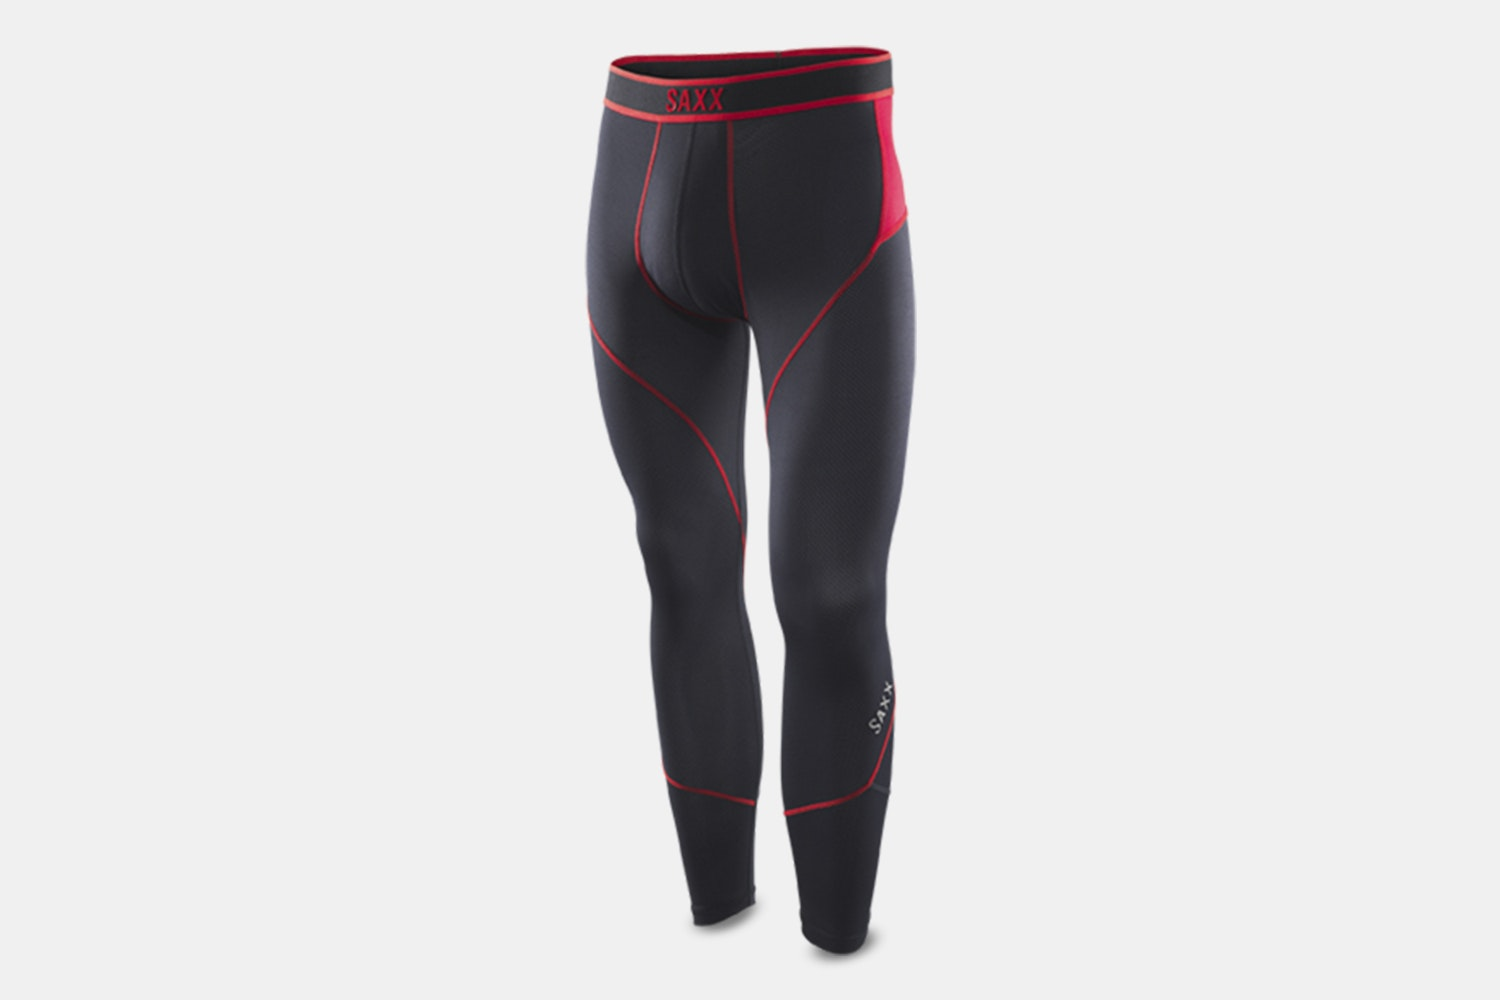 Kinetic Tights – Black/Red (+ $10)